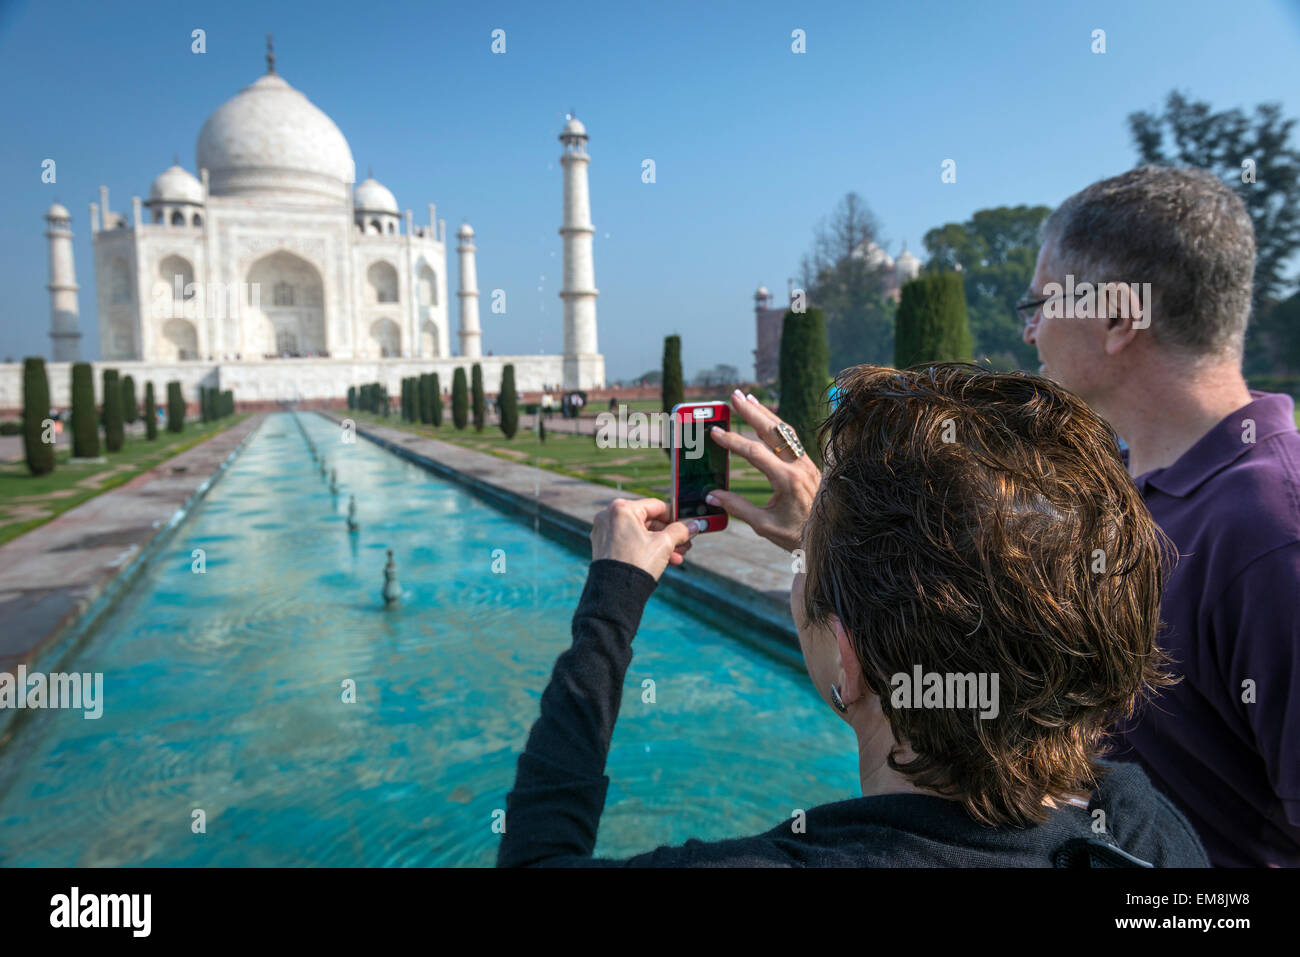 Tourists taking a snapshot on their smartphone of The Taj Mahal, Agra, India - Stock Image